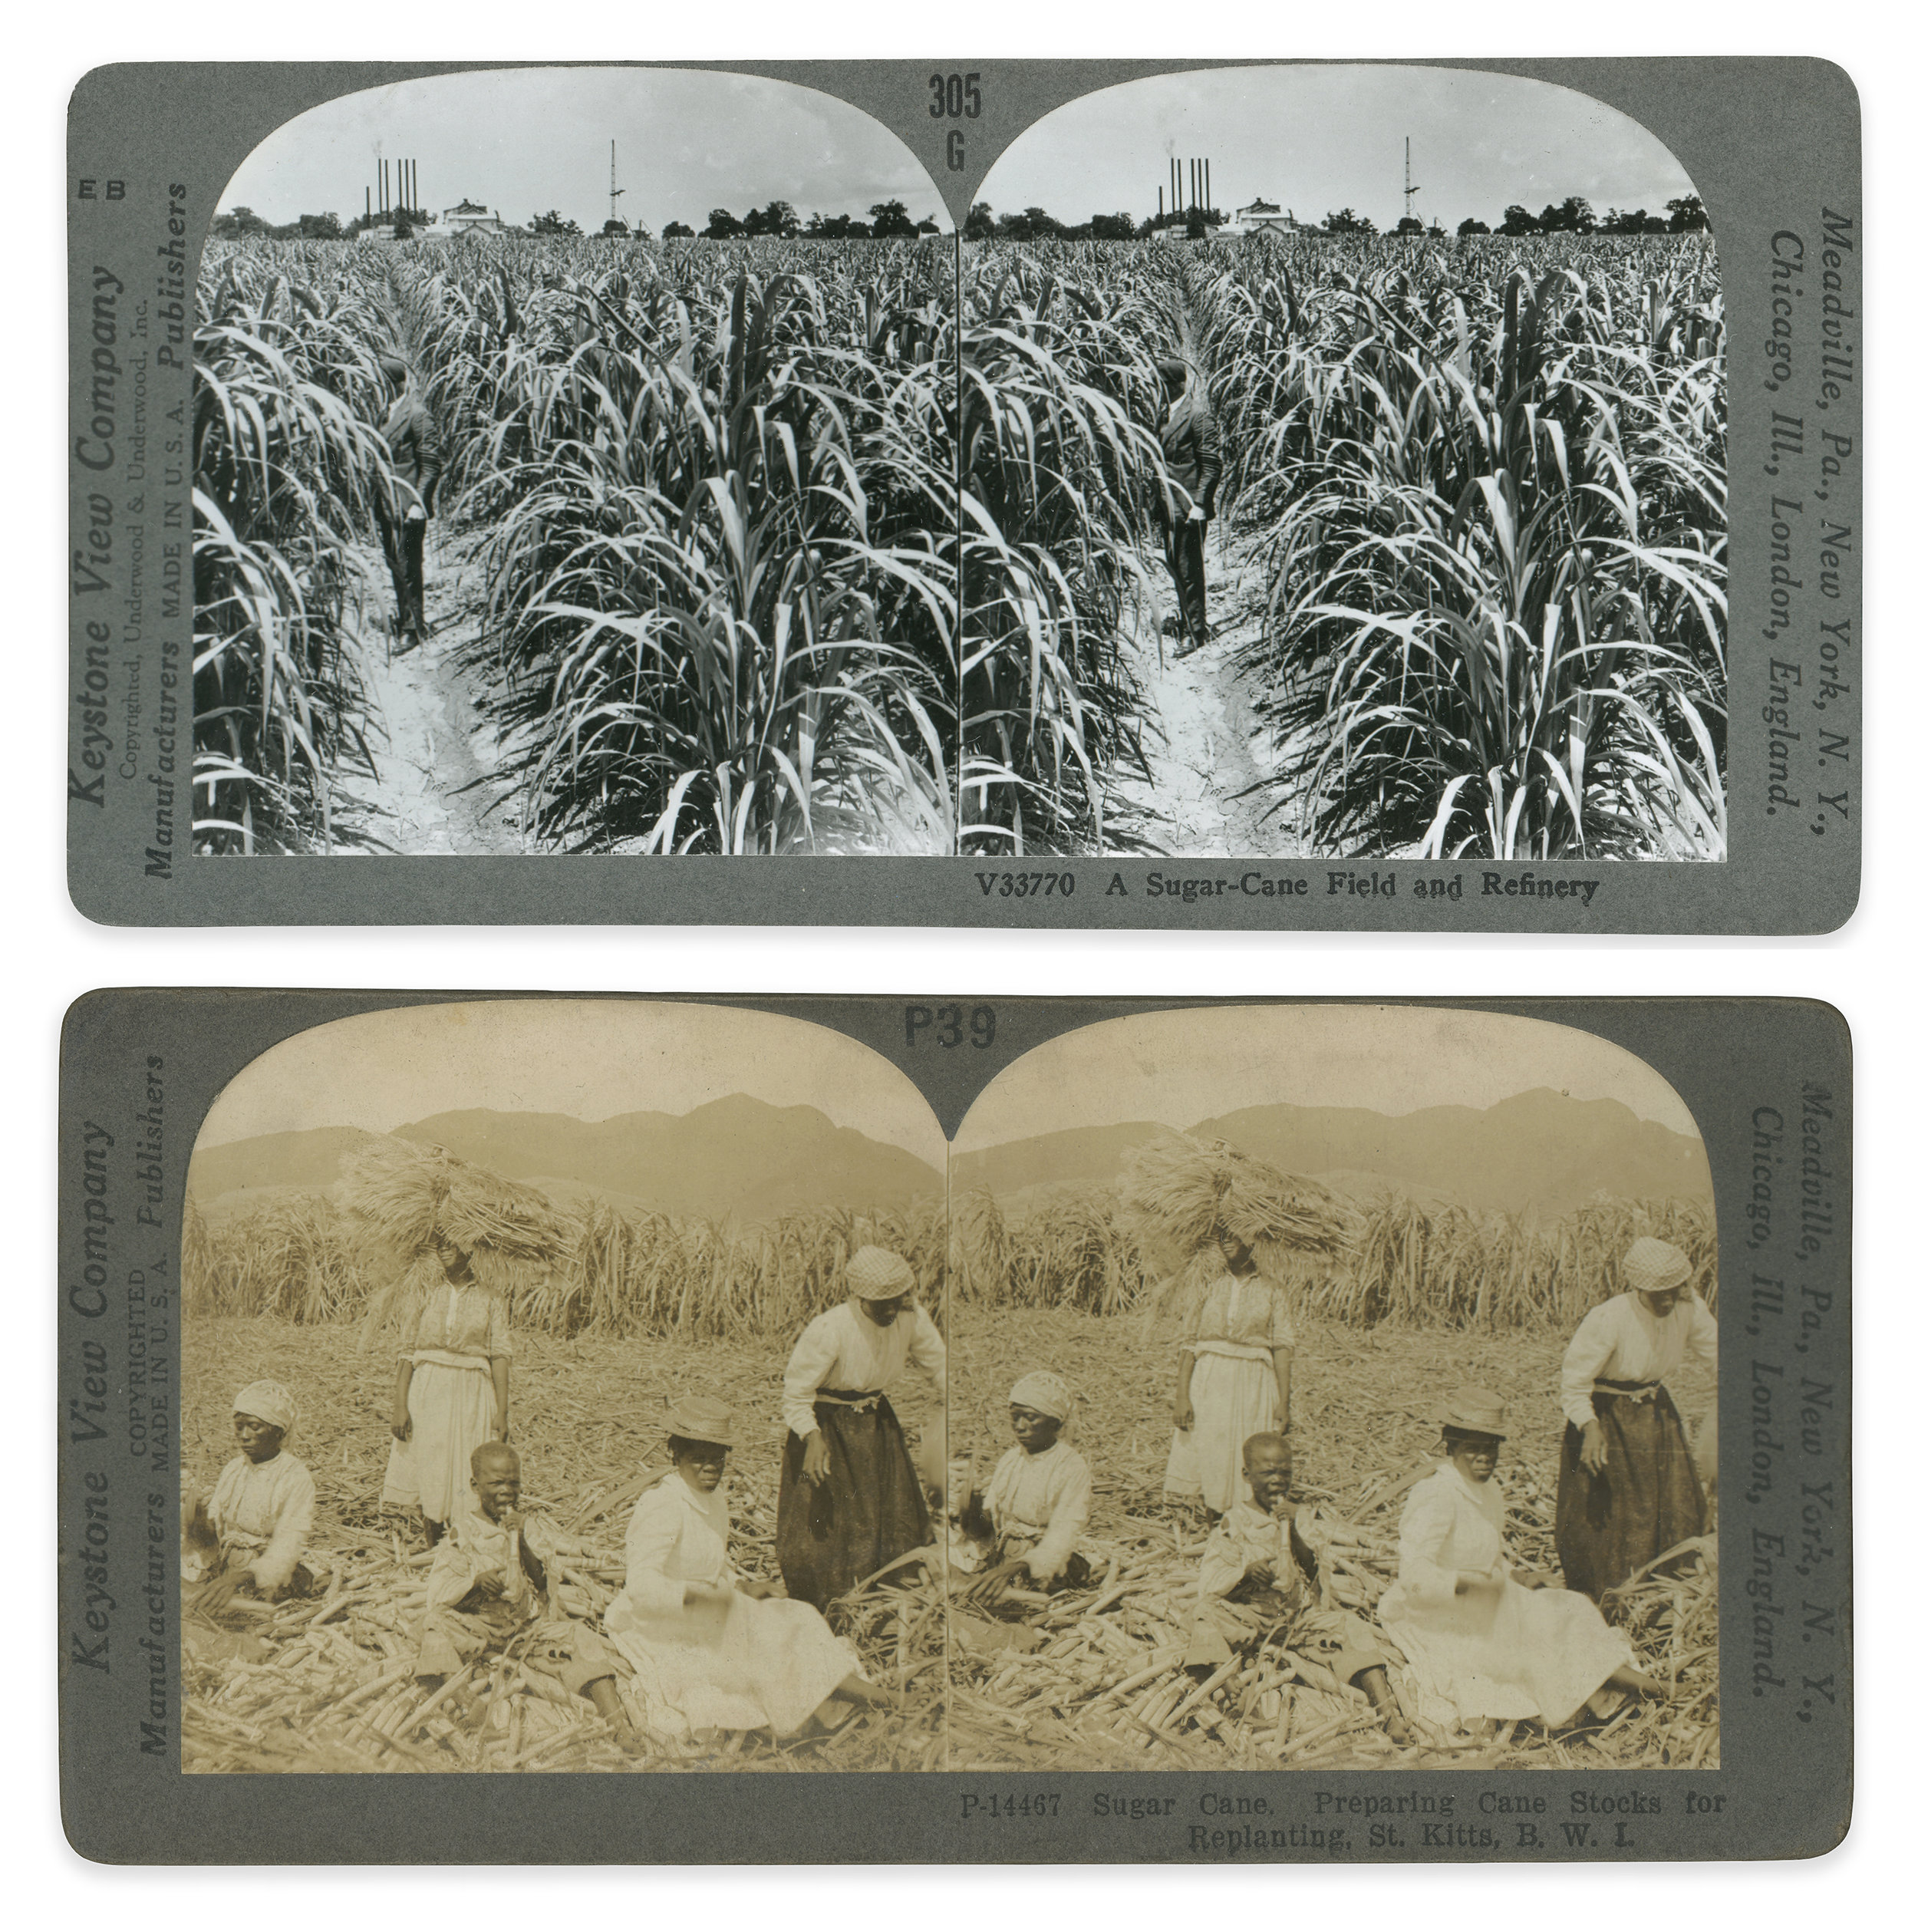 Top: A Sugar Cane Field and Refinery, 19th century, stereoscopic image, Keystone Viewing Company     Bottom: Preparing Cane Blocks for Replanting, St. Kitts, 19th century, stereoscopic image, Keystone Viewing Company